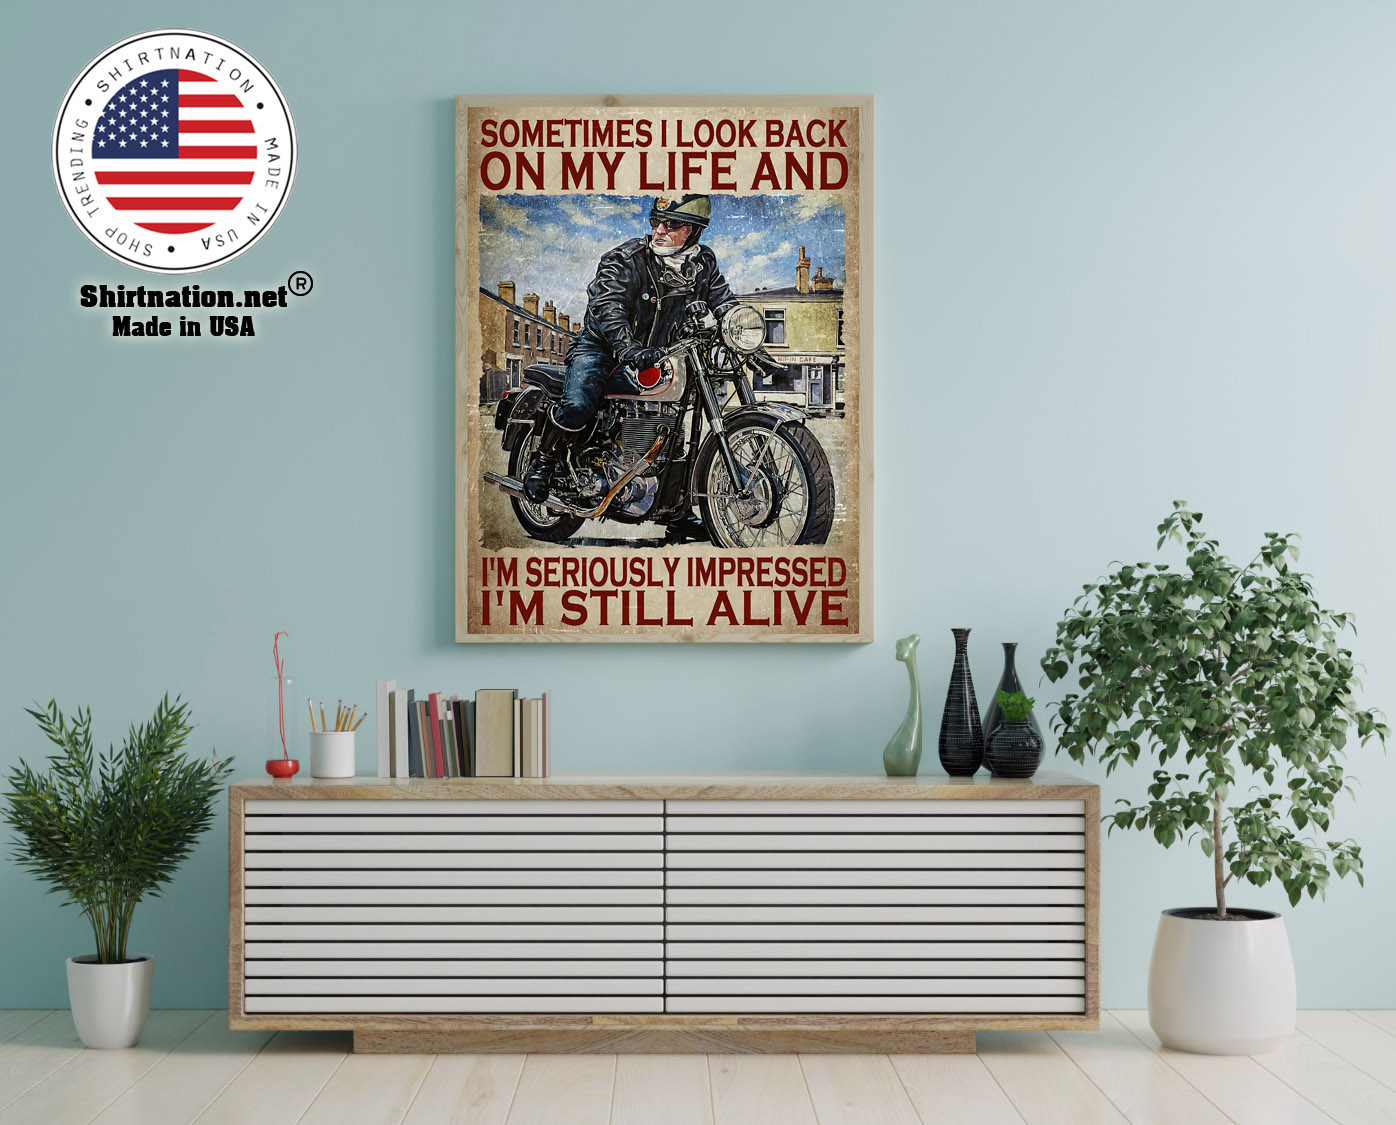 Motorcycles man Sometimes I look back on my life and Im seriously impressed Im still alive poster 12